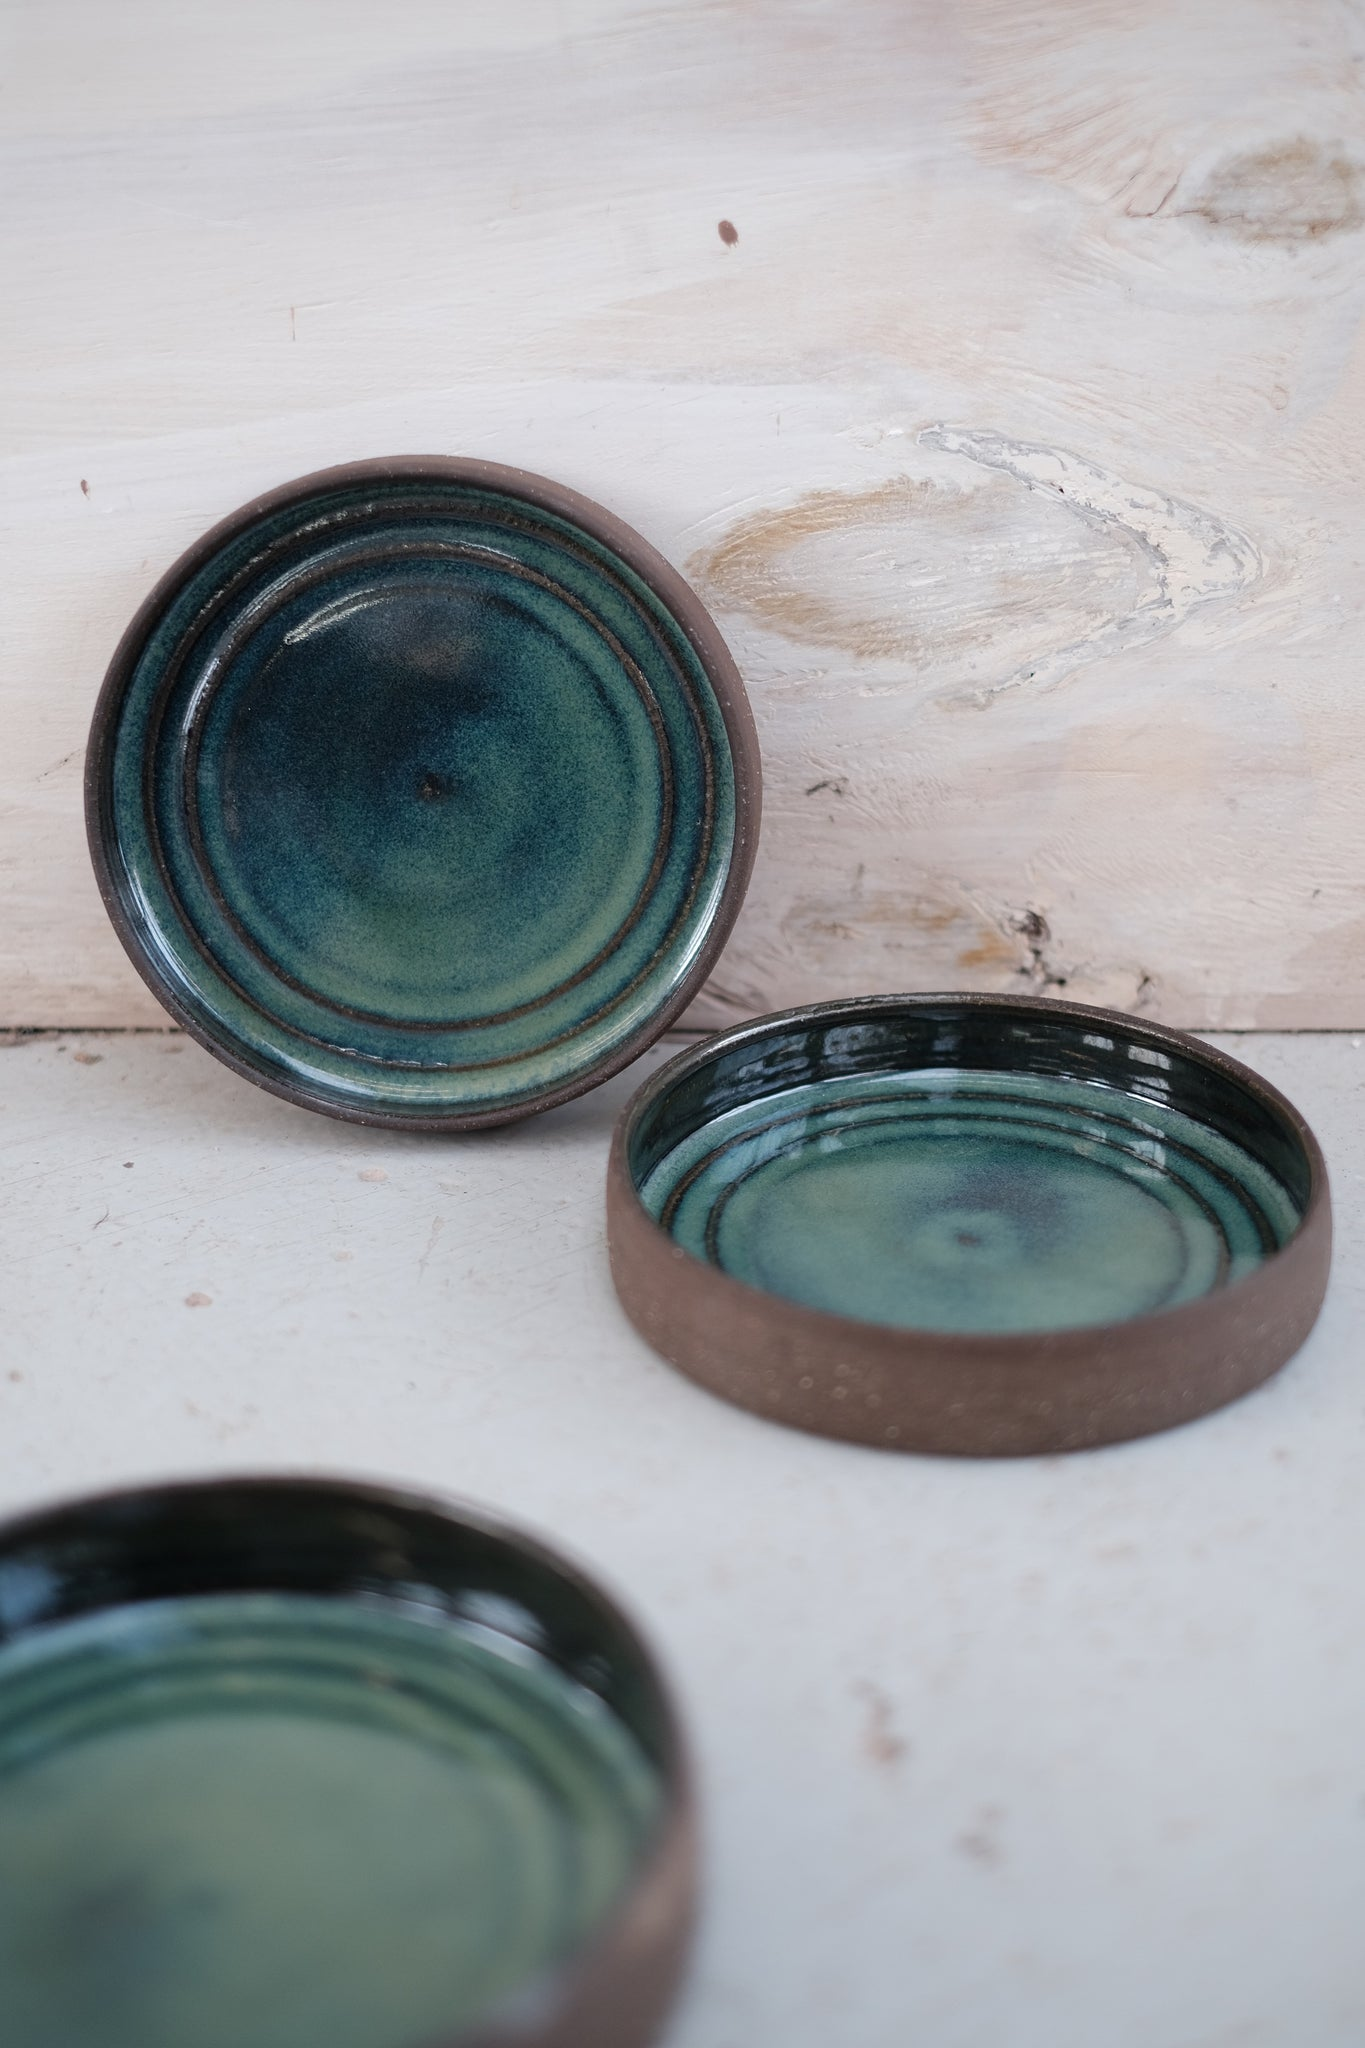 Candle plates in blue green glaze